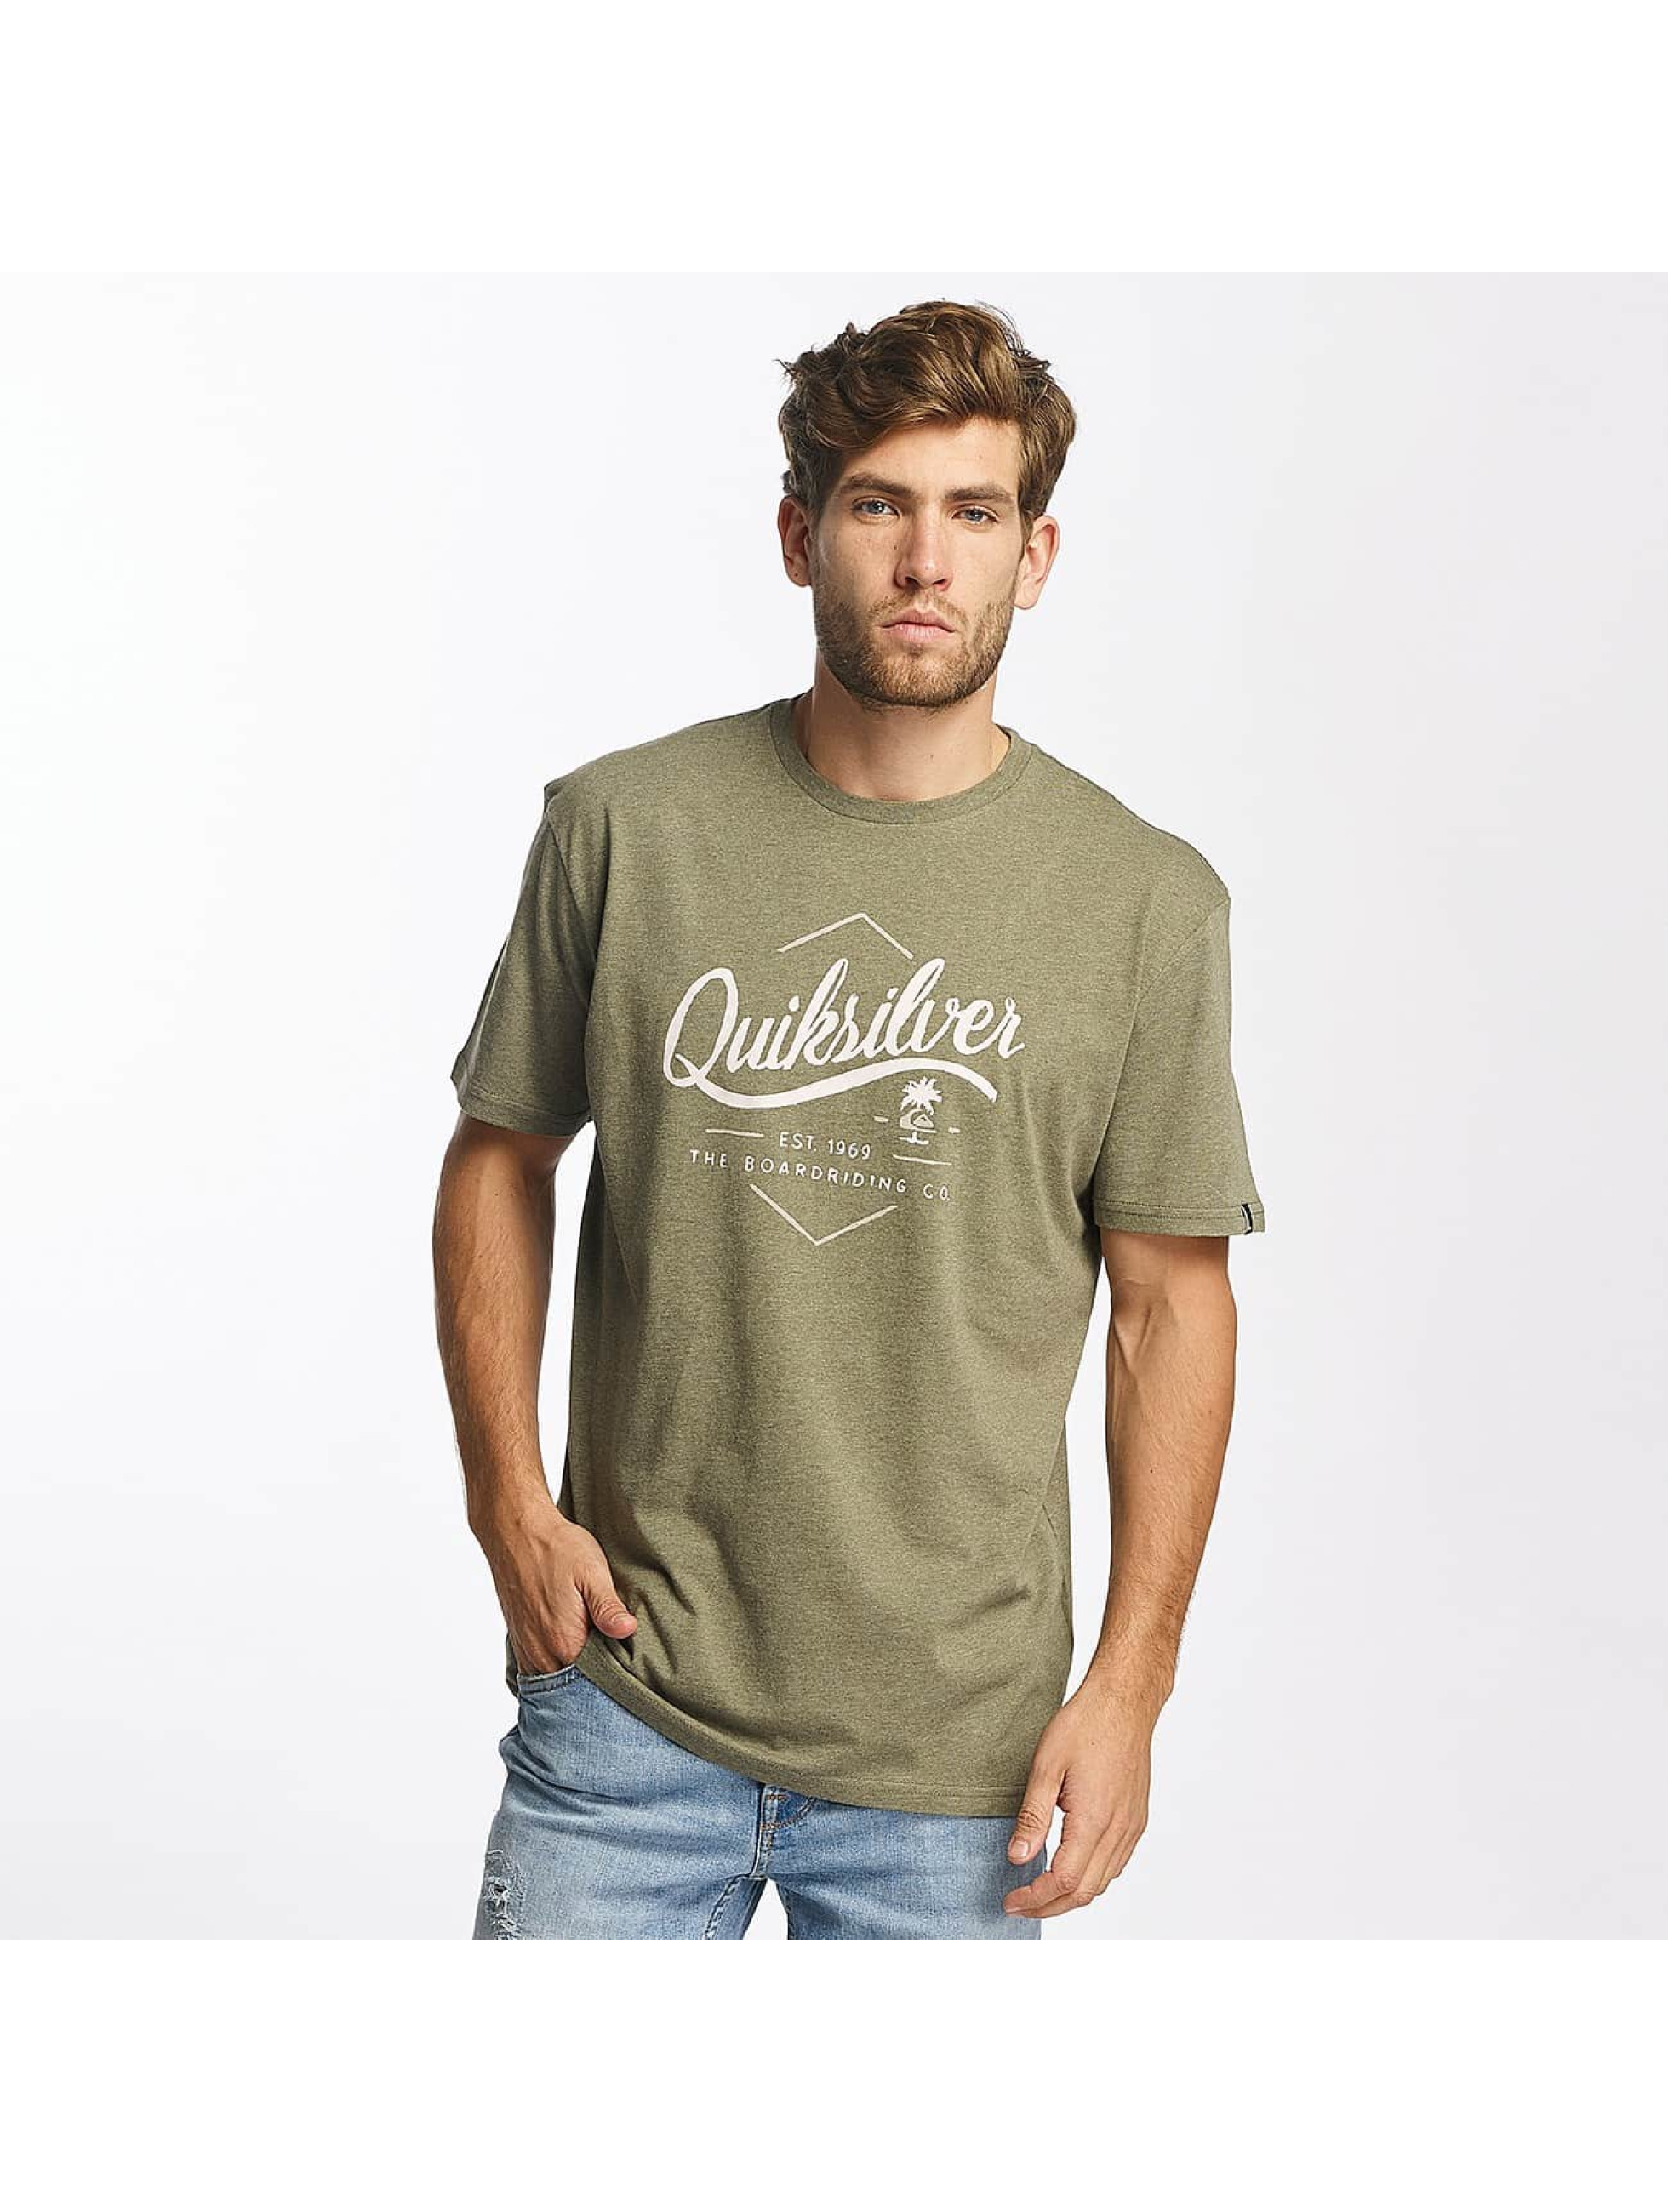 Quiksilver T-skjorter Classic Sea Tales oliven